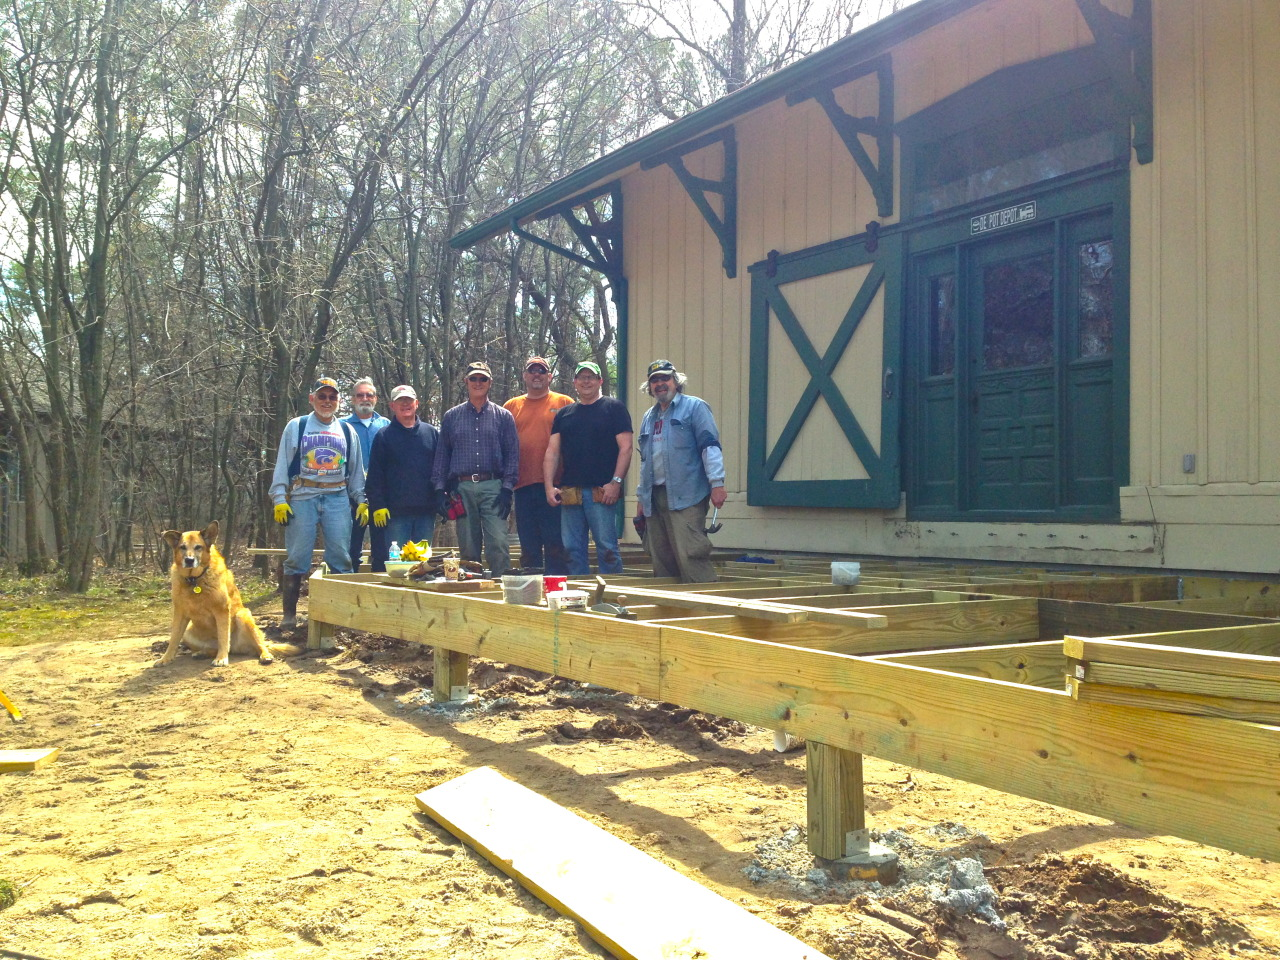 Bartlett Boardwalk Boys, led by the Venerable VanderWall, are building decking to enhance the depot, just in time for Tulip Time.